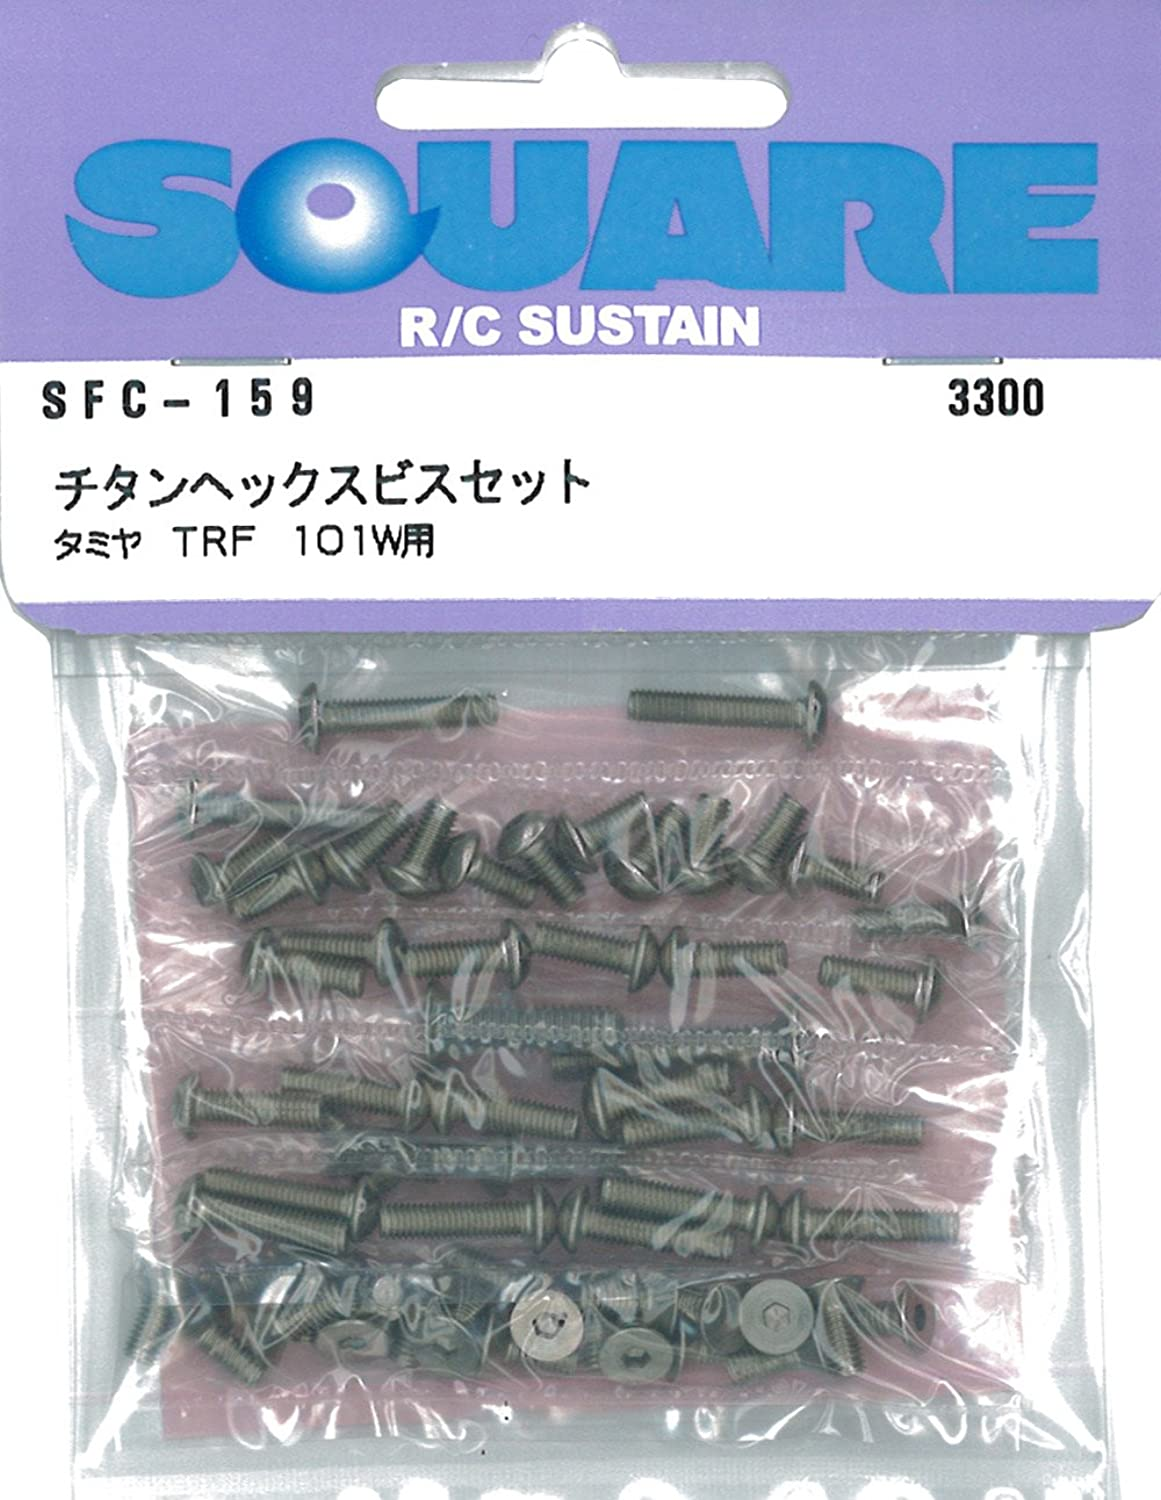 Titanium hex screw set Tamiya TRF101W for SFC159